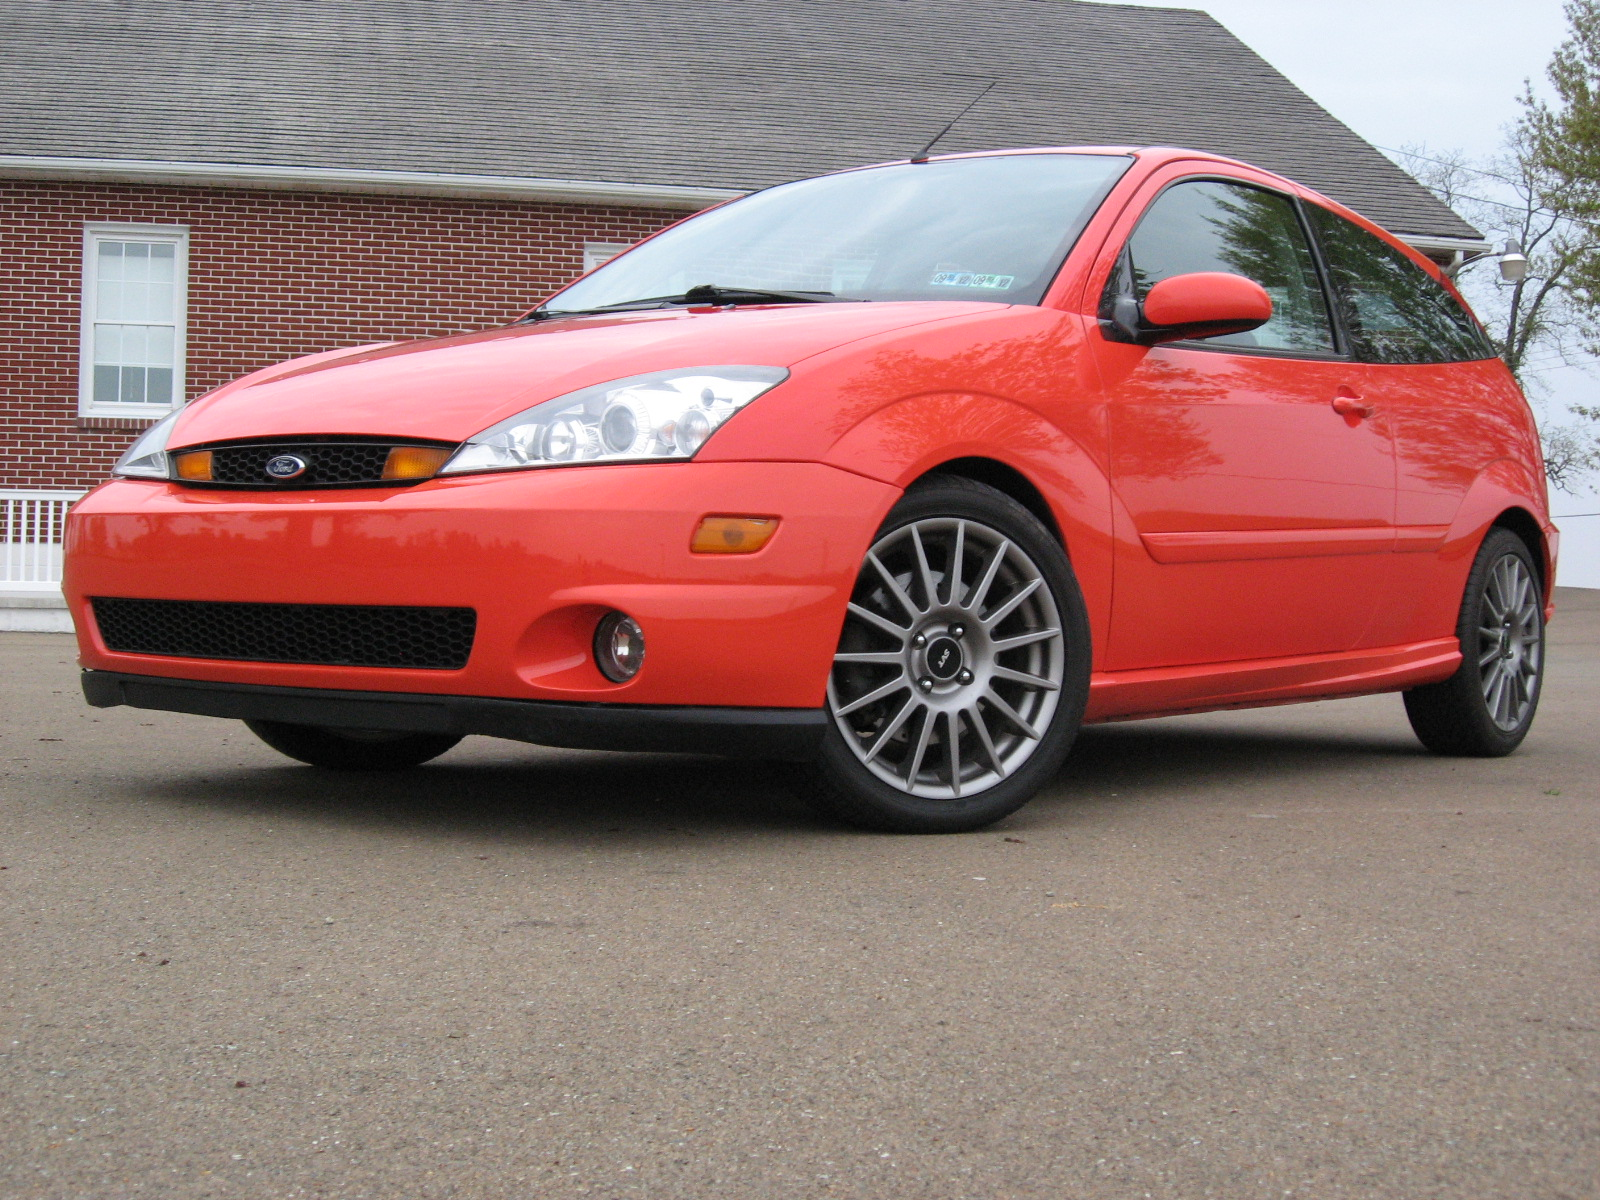 Nitroracers ford focus svt readers rides